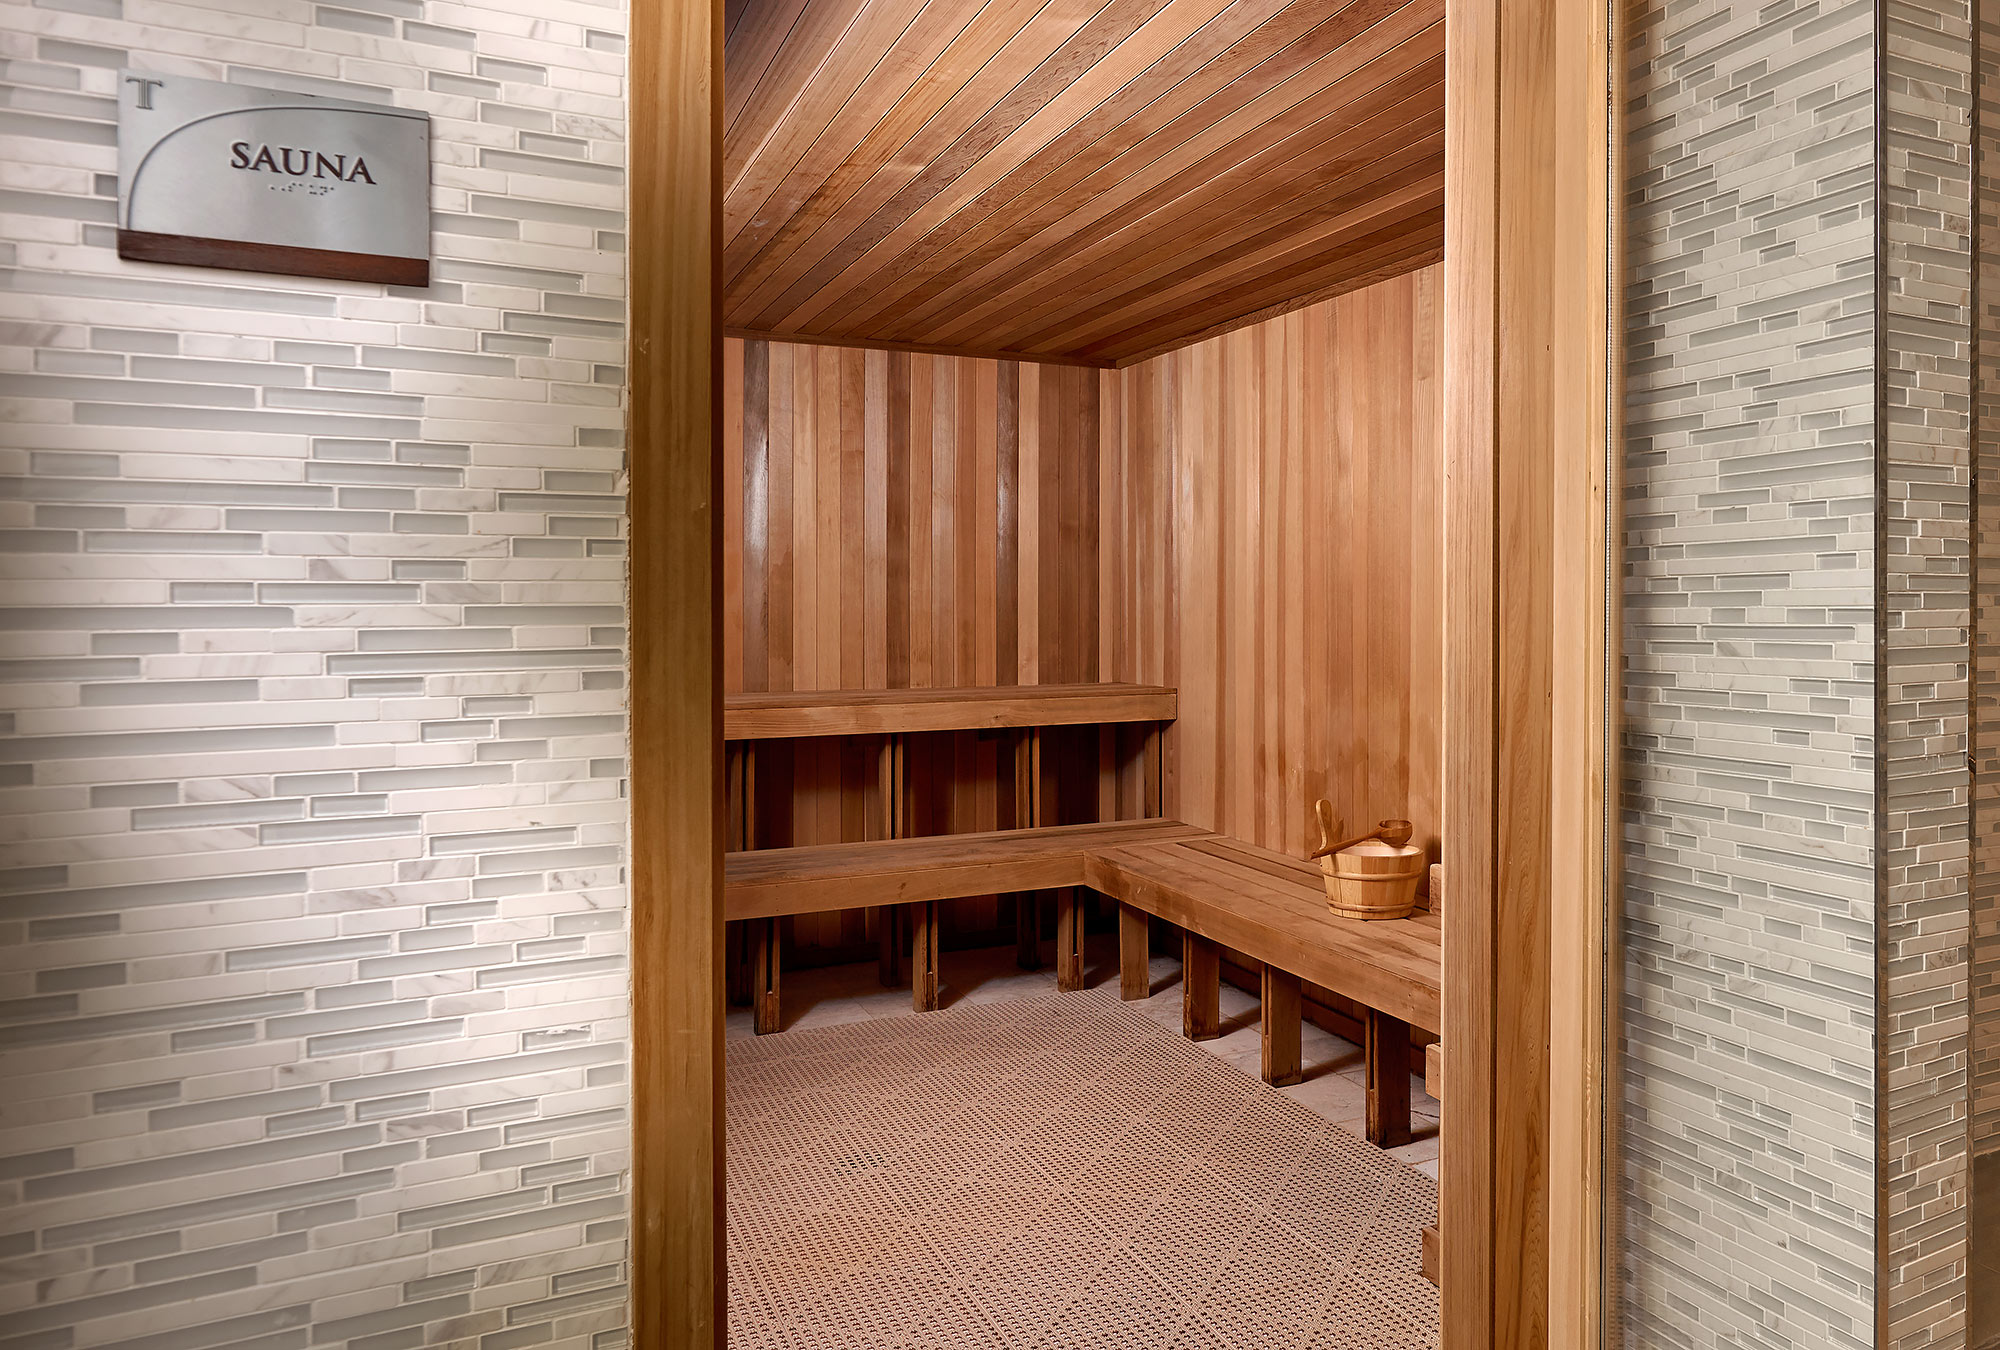 Sauna-Interior-Trump-Plaza-Miami-Beach